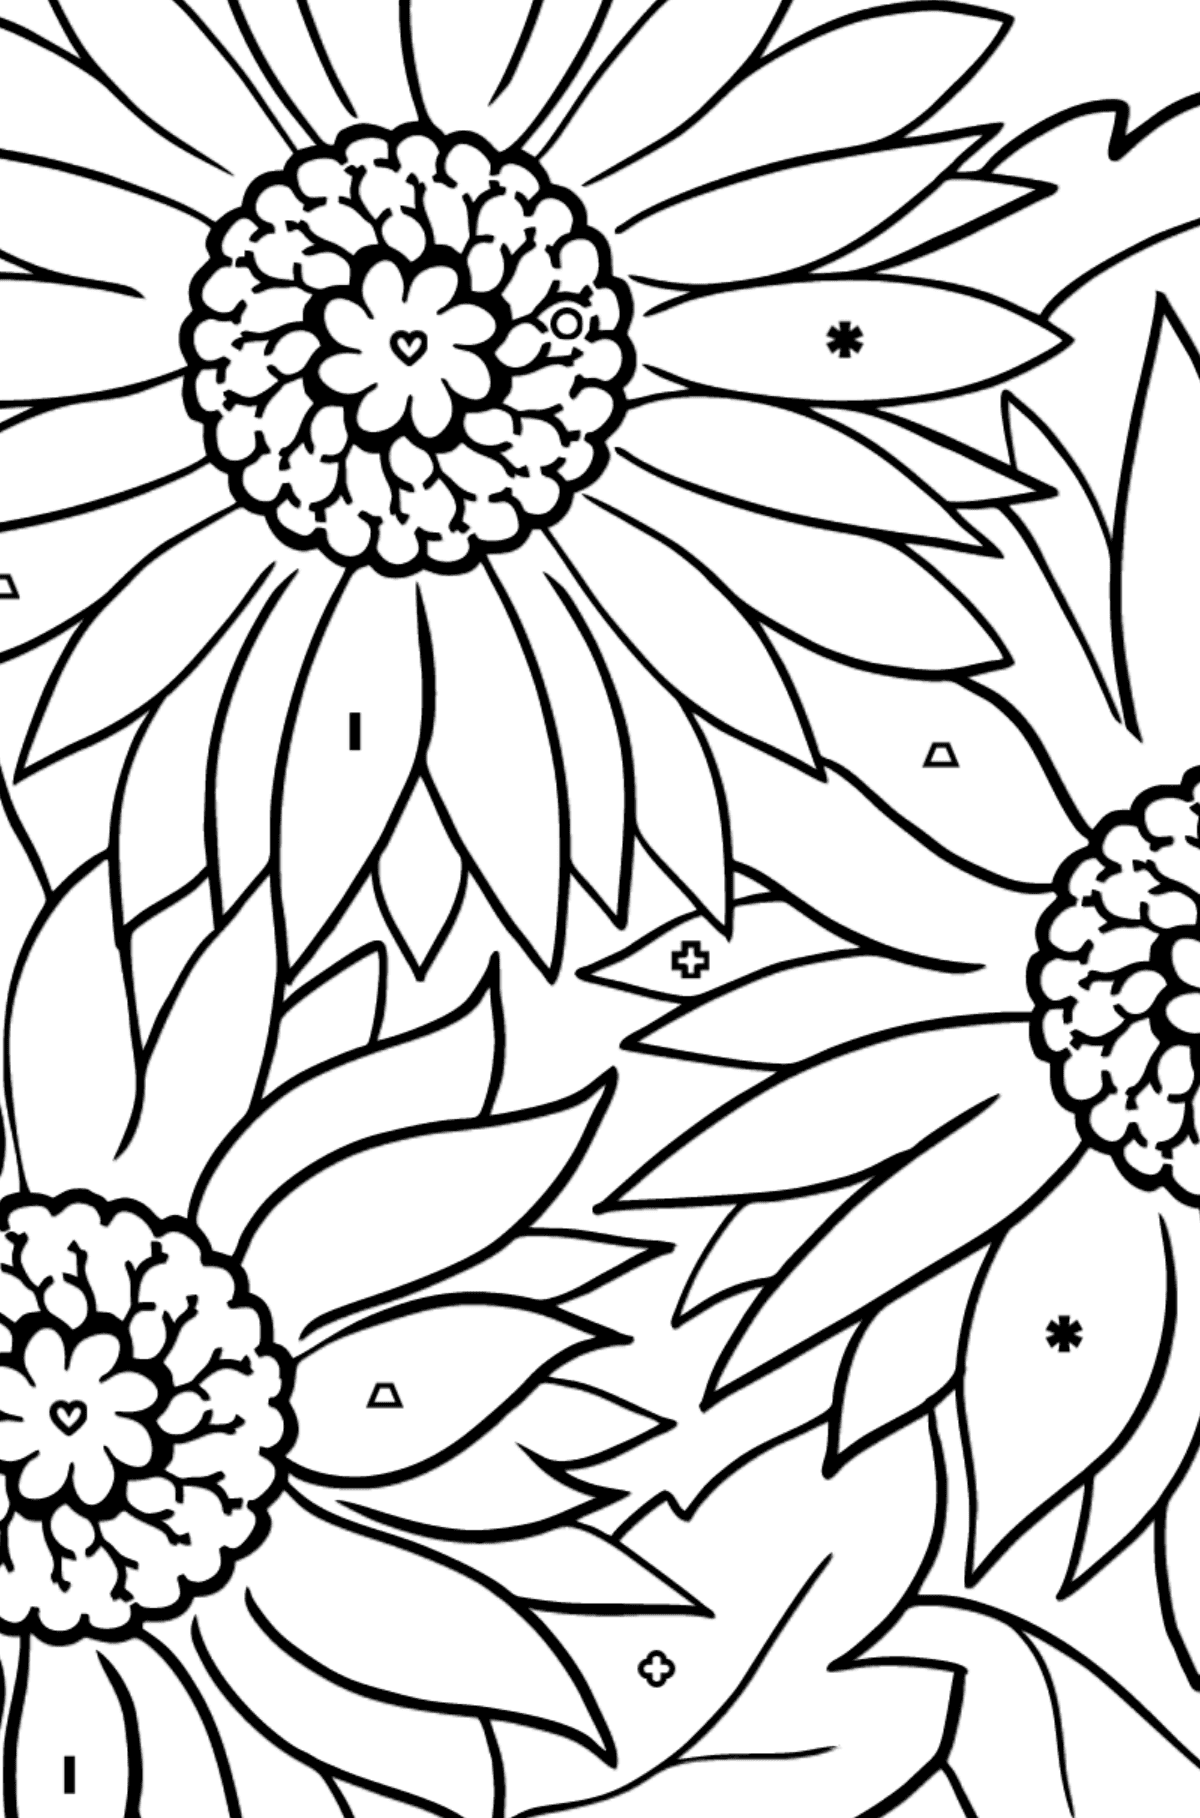 Coloring Page - Yellow Gerbera - Coloring by Symbols and Geometric Shapes for Kids